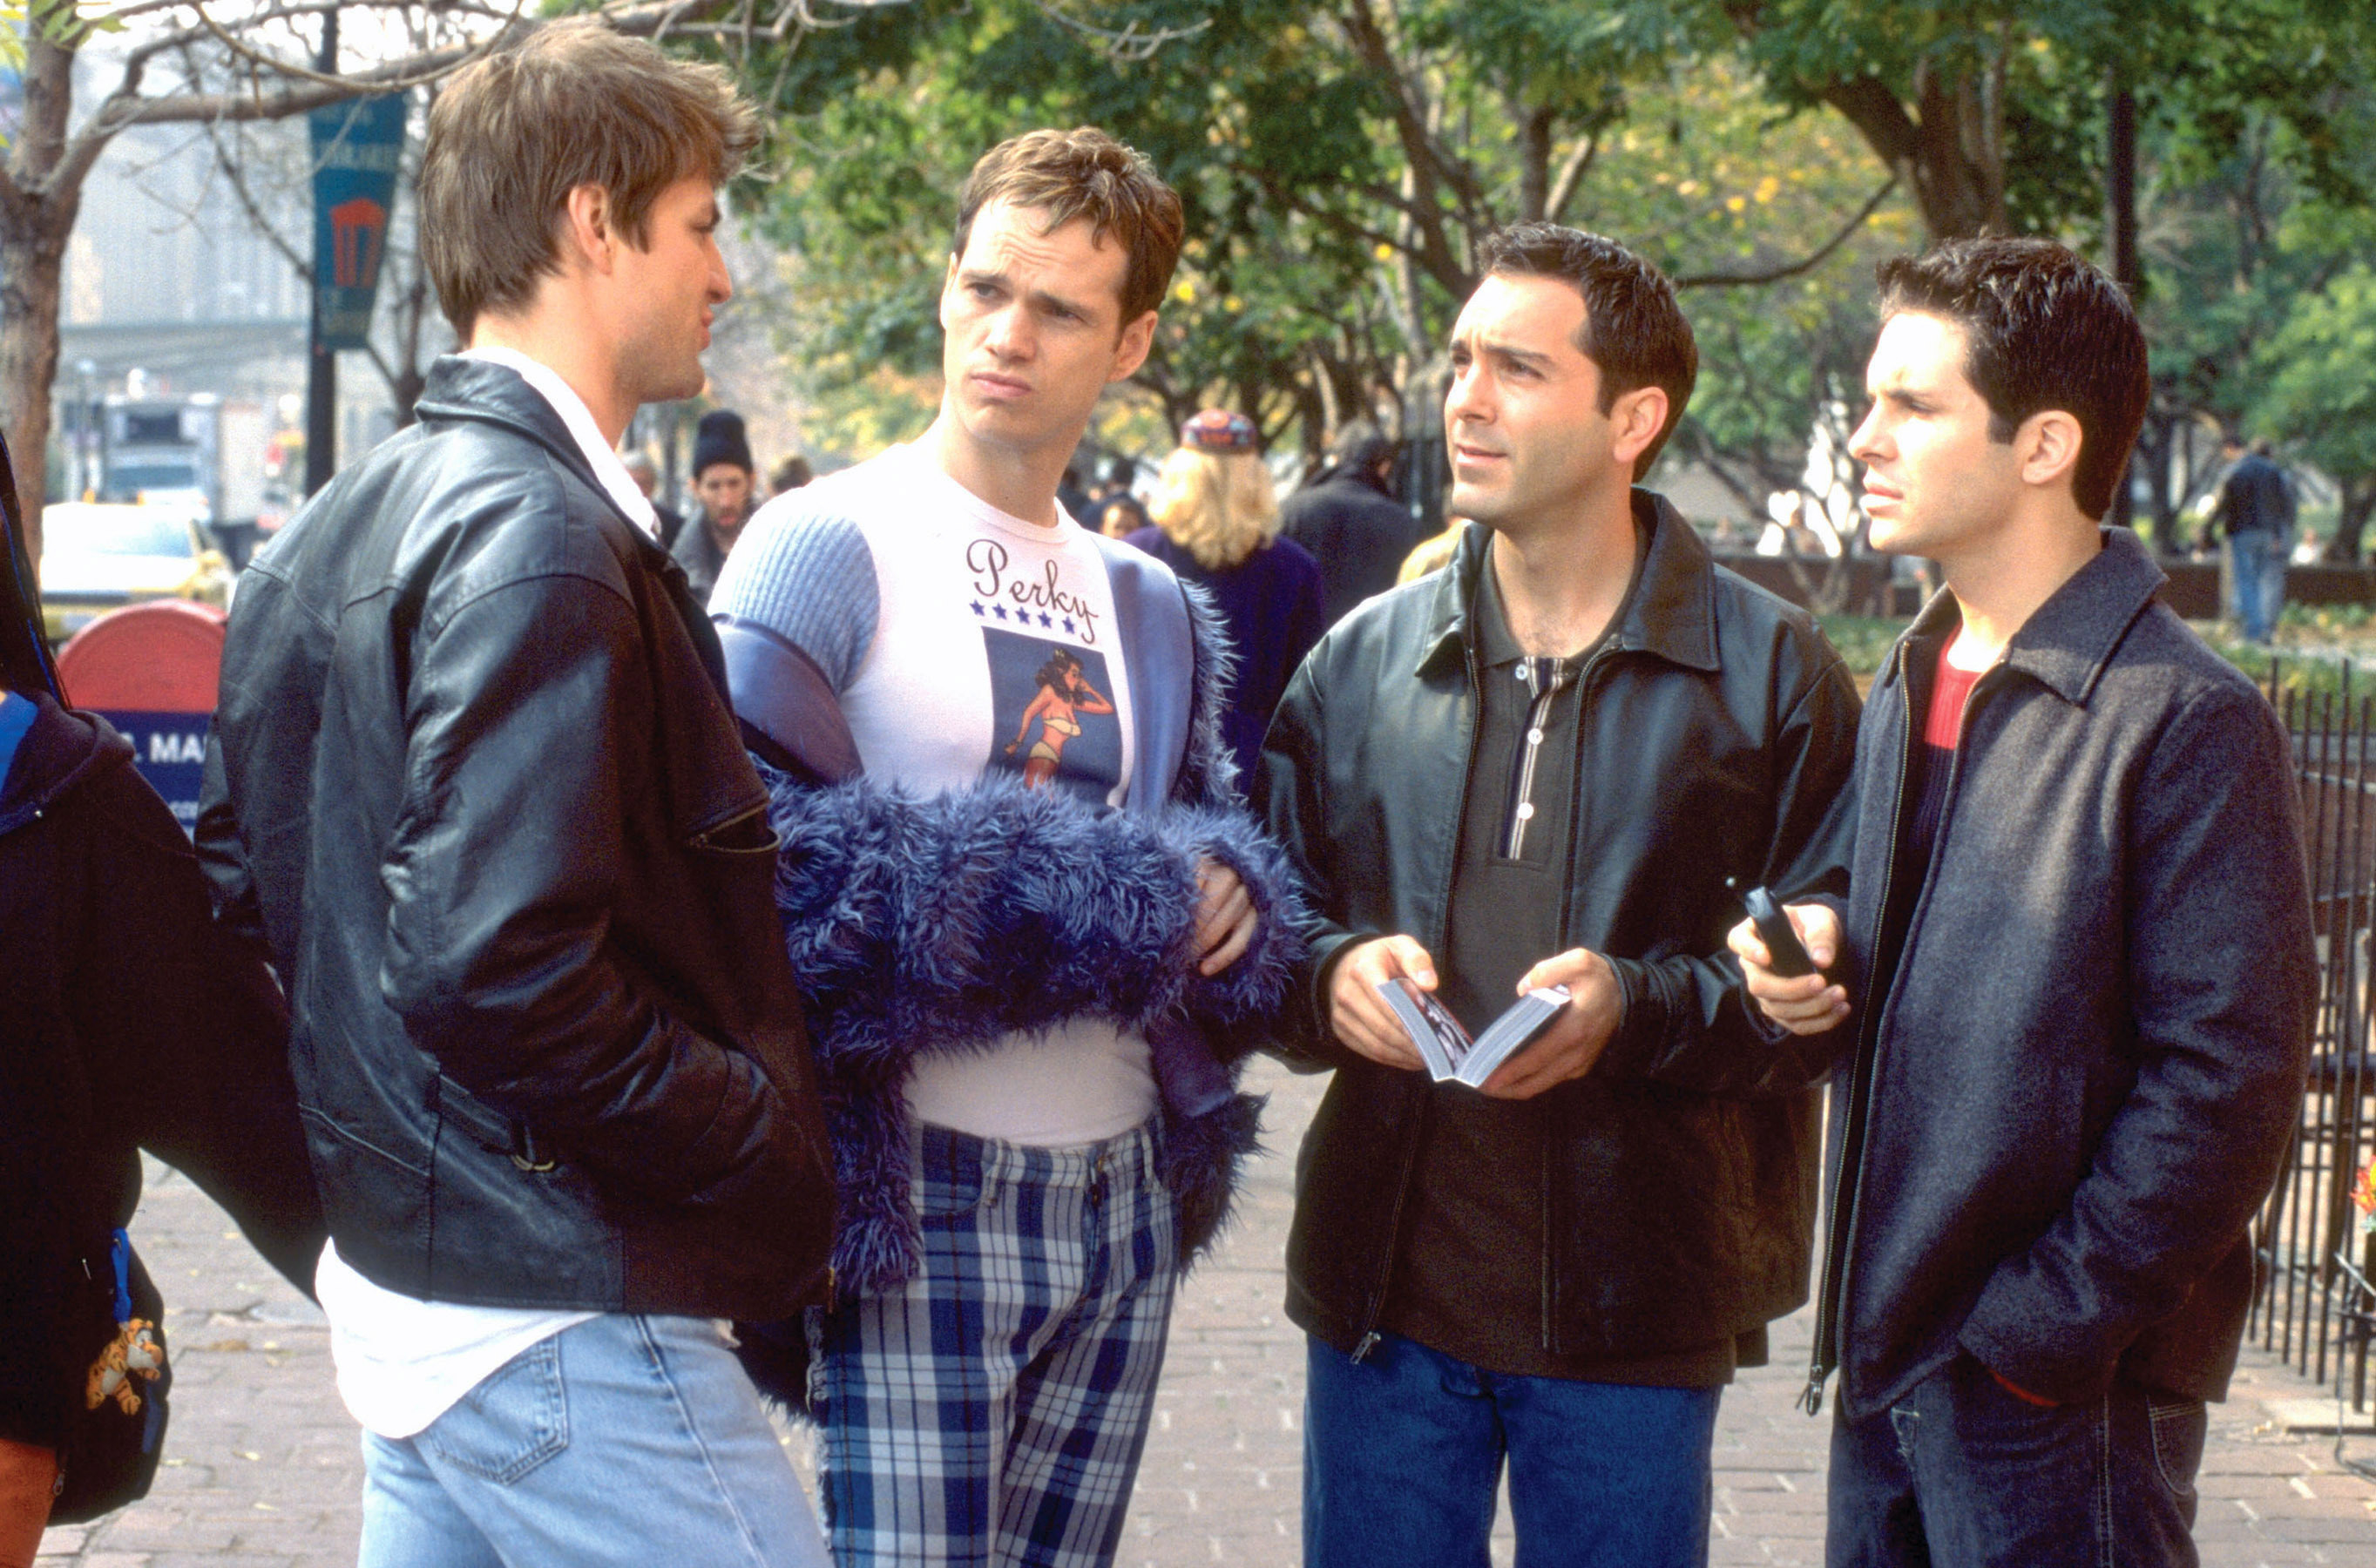 Gale Harold, Peter Paige, Scott Lowell, and Hal Sparks stand in a park